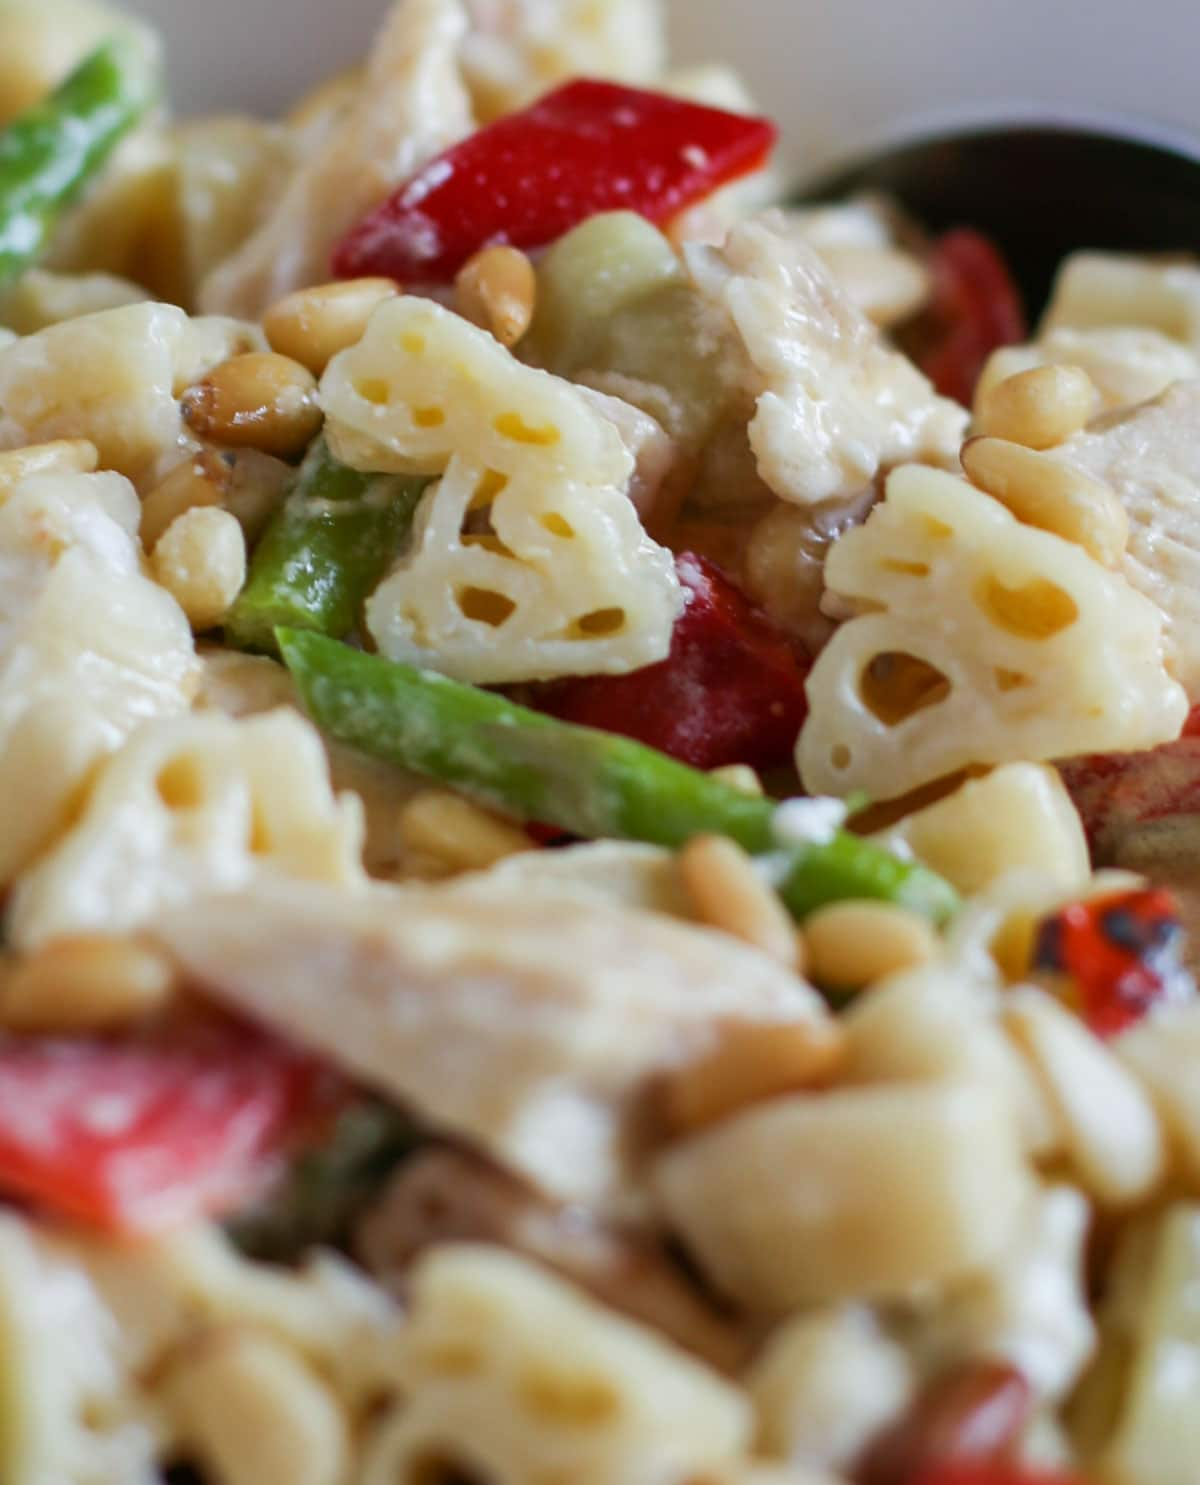 Skillet Chicken Alfredo | Delicious combo of chicken, veggies, and alfredo sauce -with a surprise of goat cheese! Simple and quick. Dinner done right! WorldofPastabilities.com